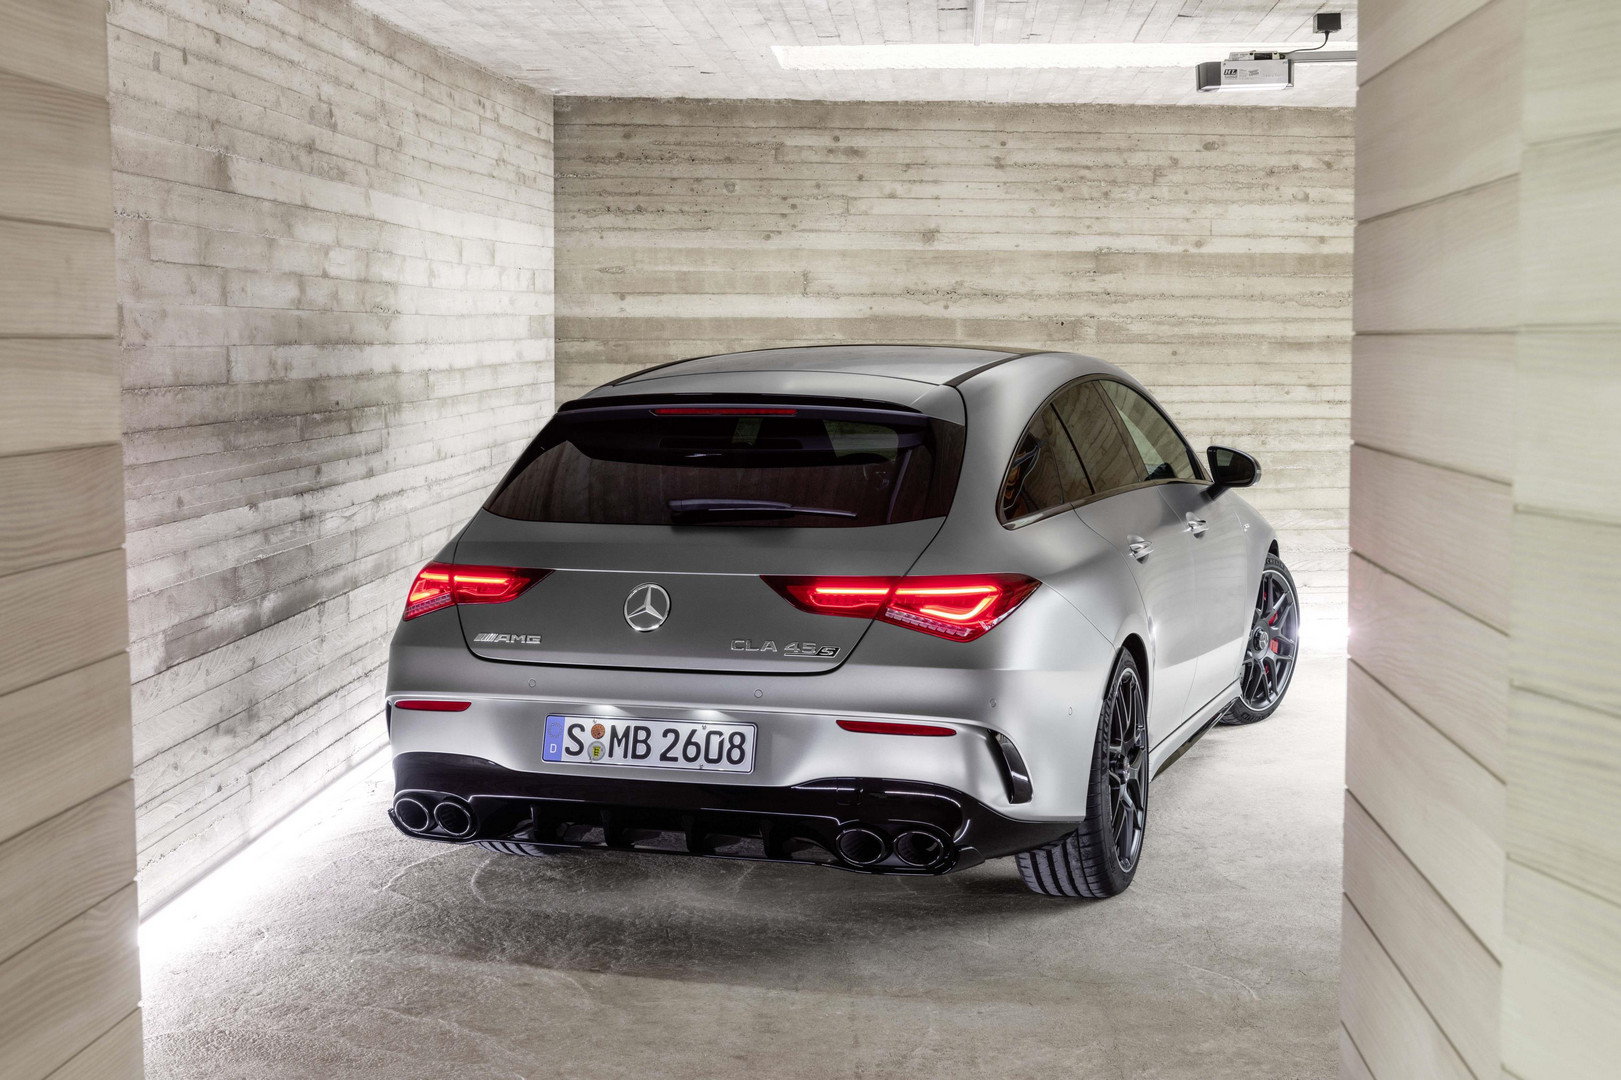 Mercedes-AMG CLA 45 S Shooting Brake Rear View